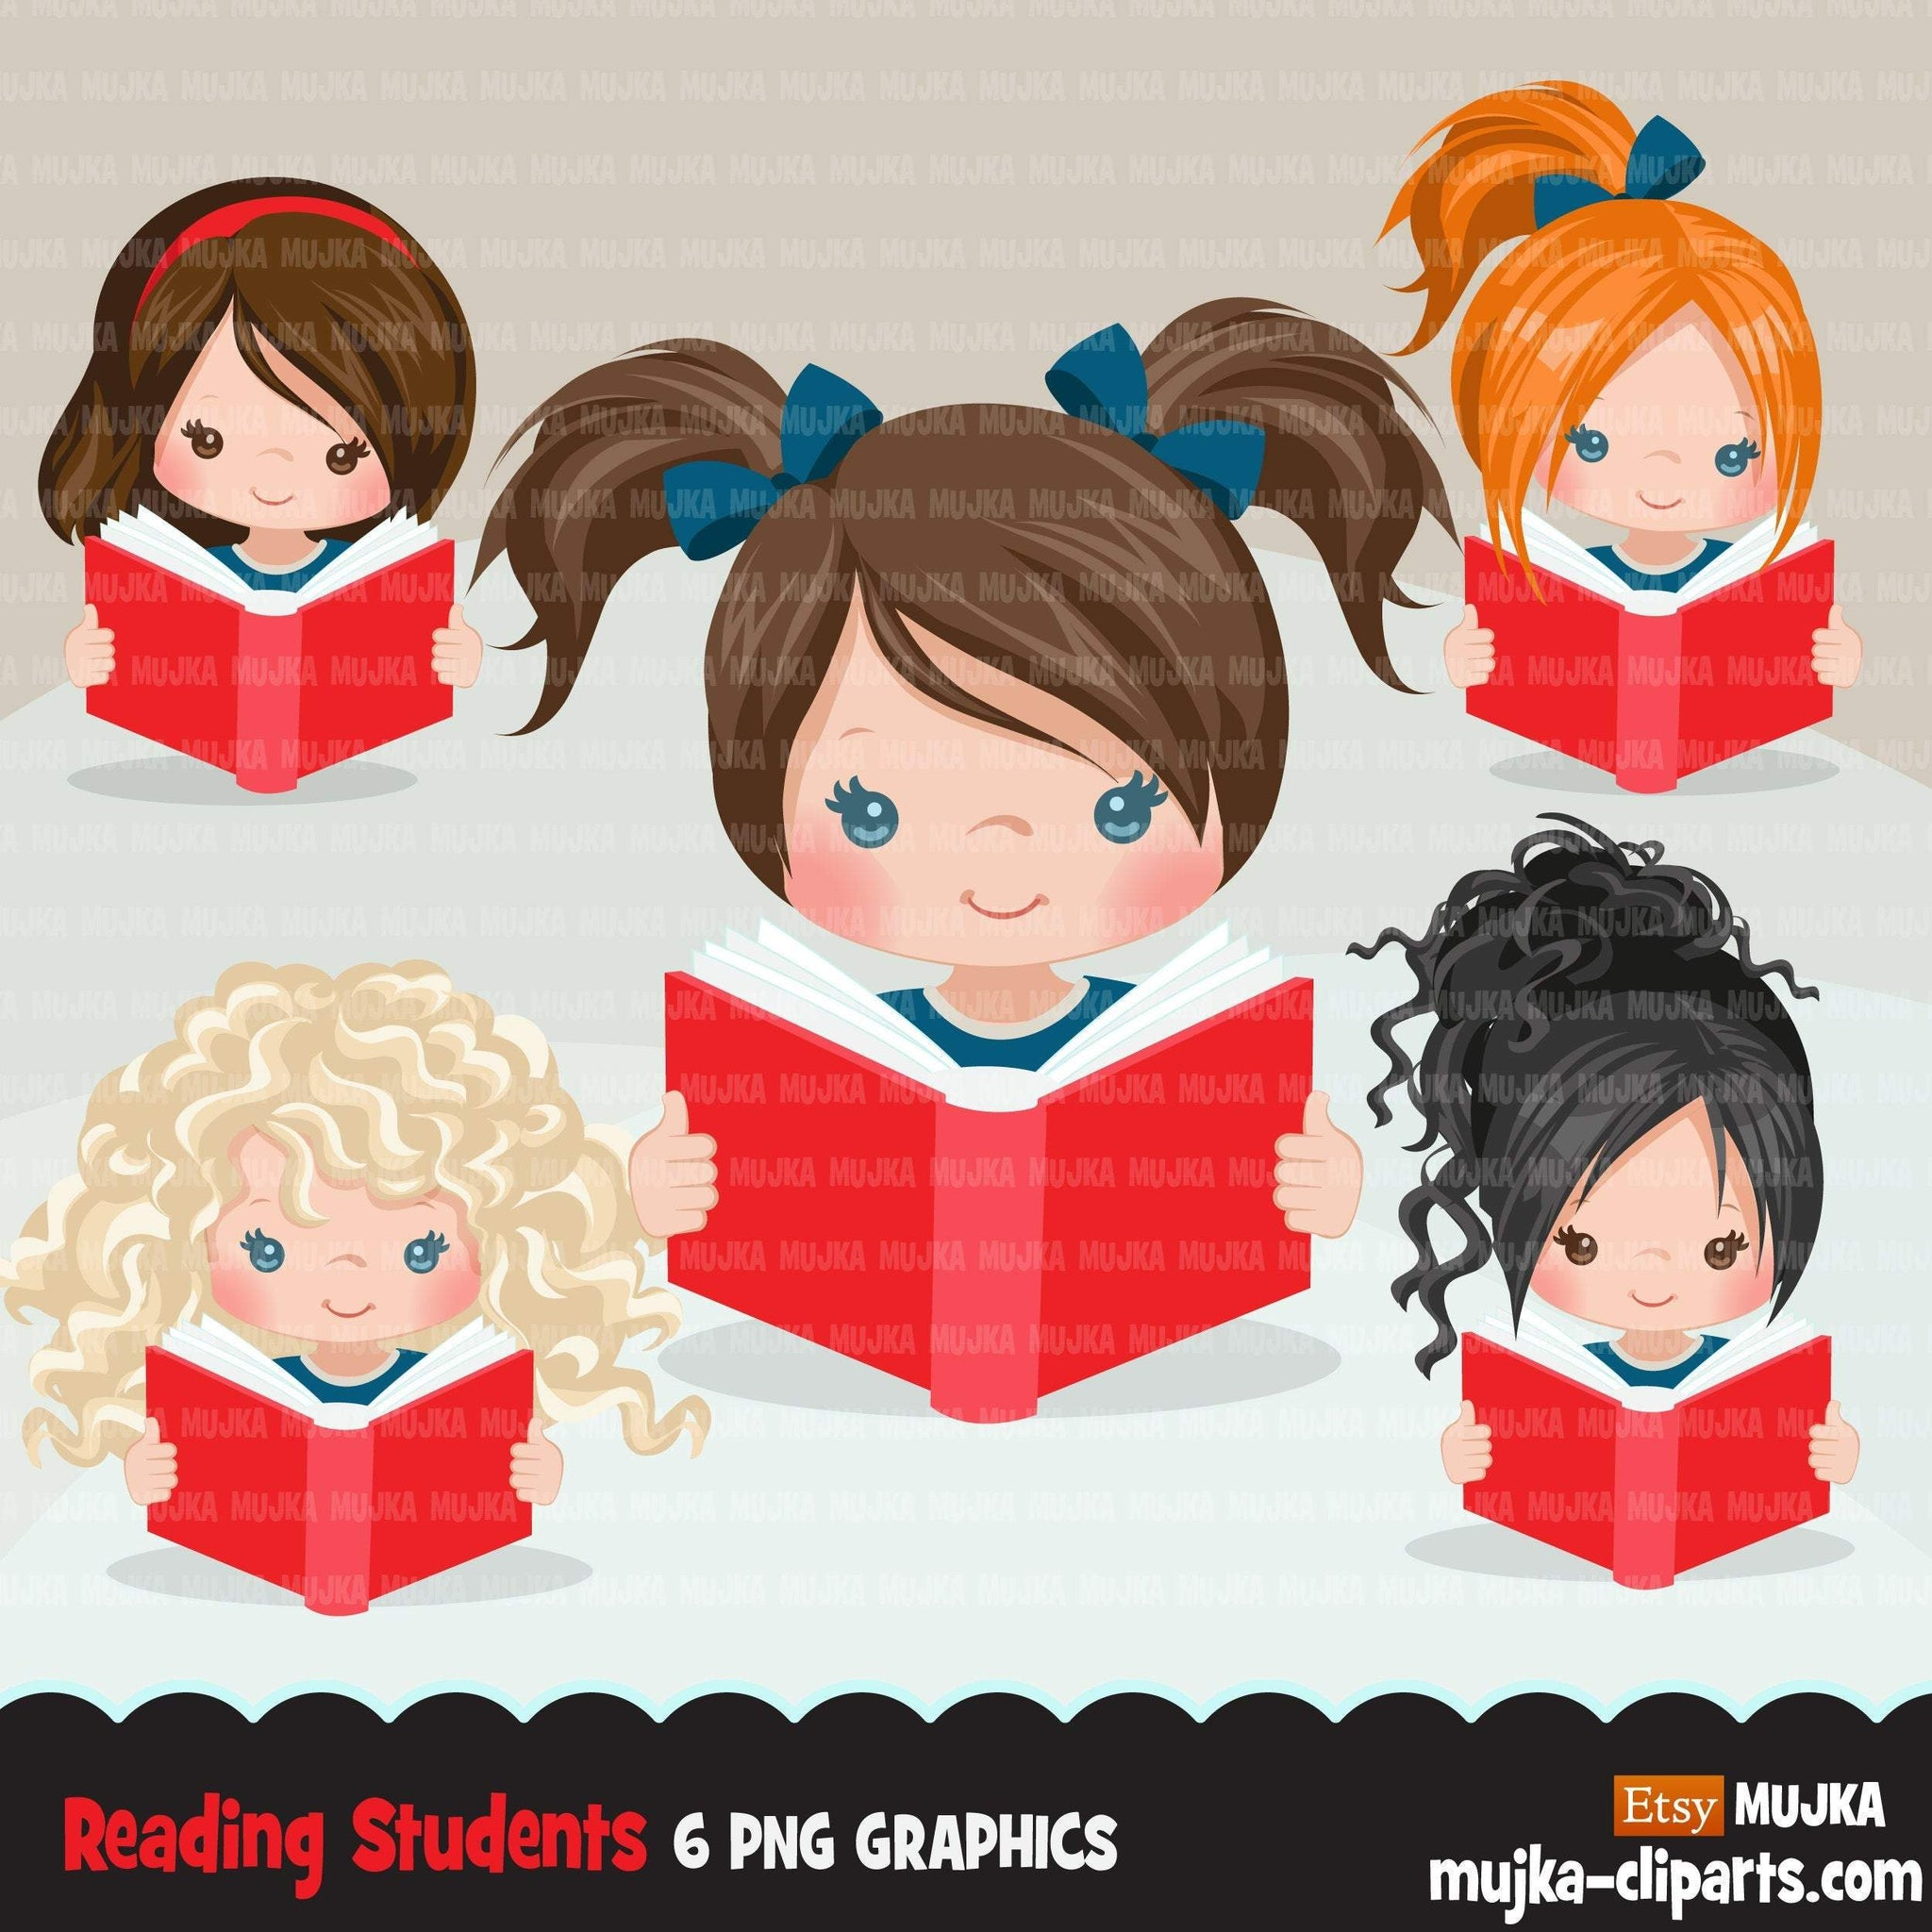 Reading clipart, school activity, back to school student girl graphics, planner sticker, bookworm, reading activity